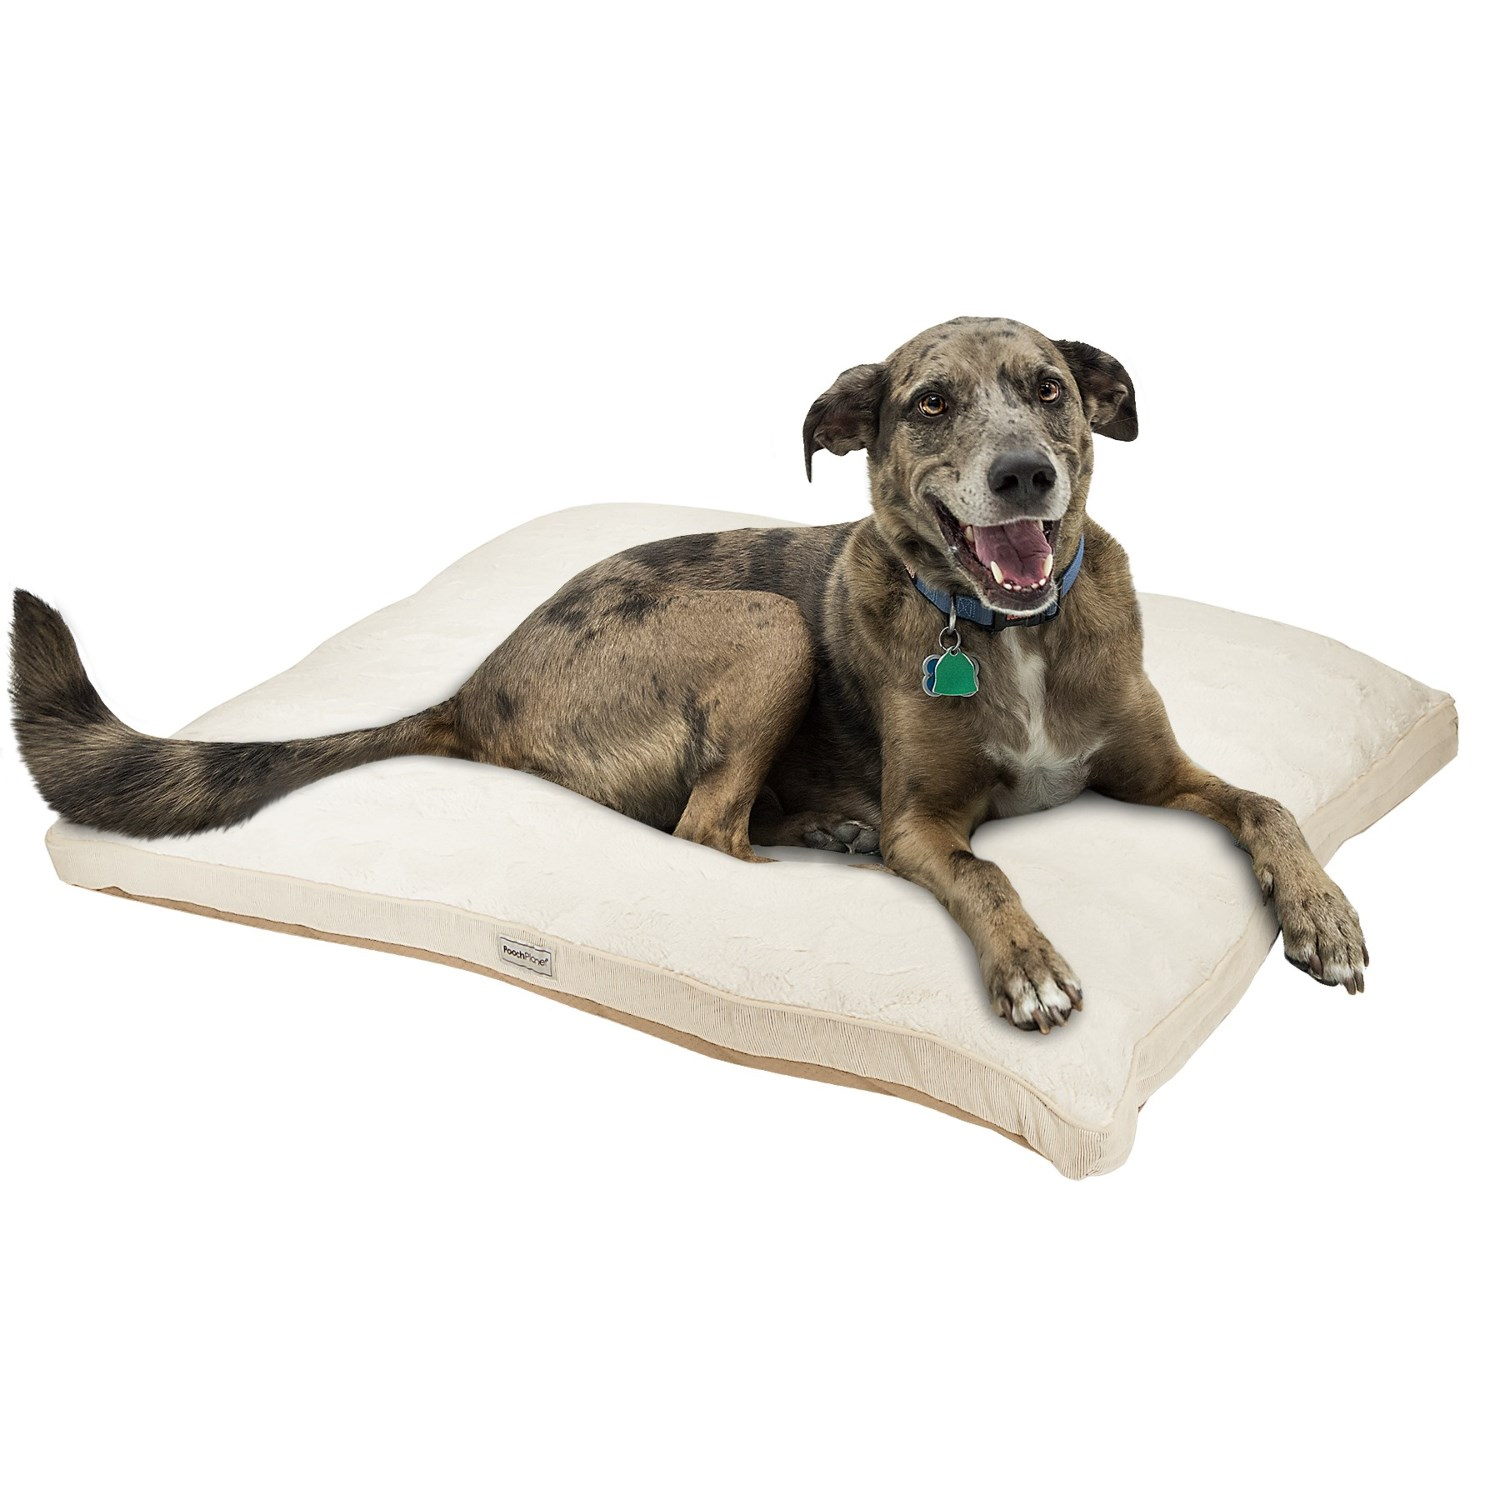 Poochplanet Extra Large Dog Bed